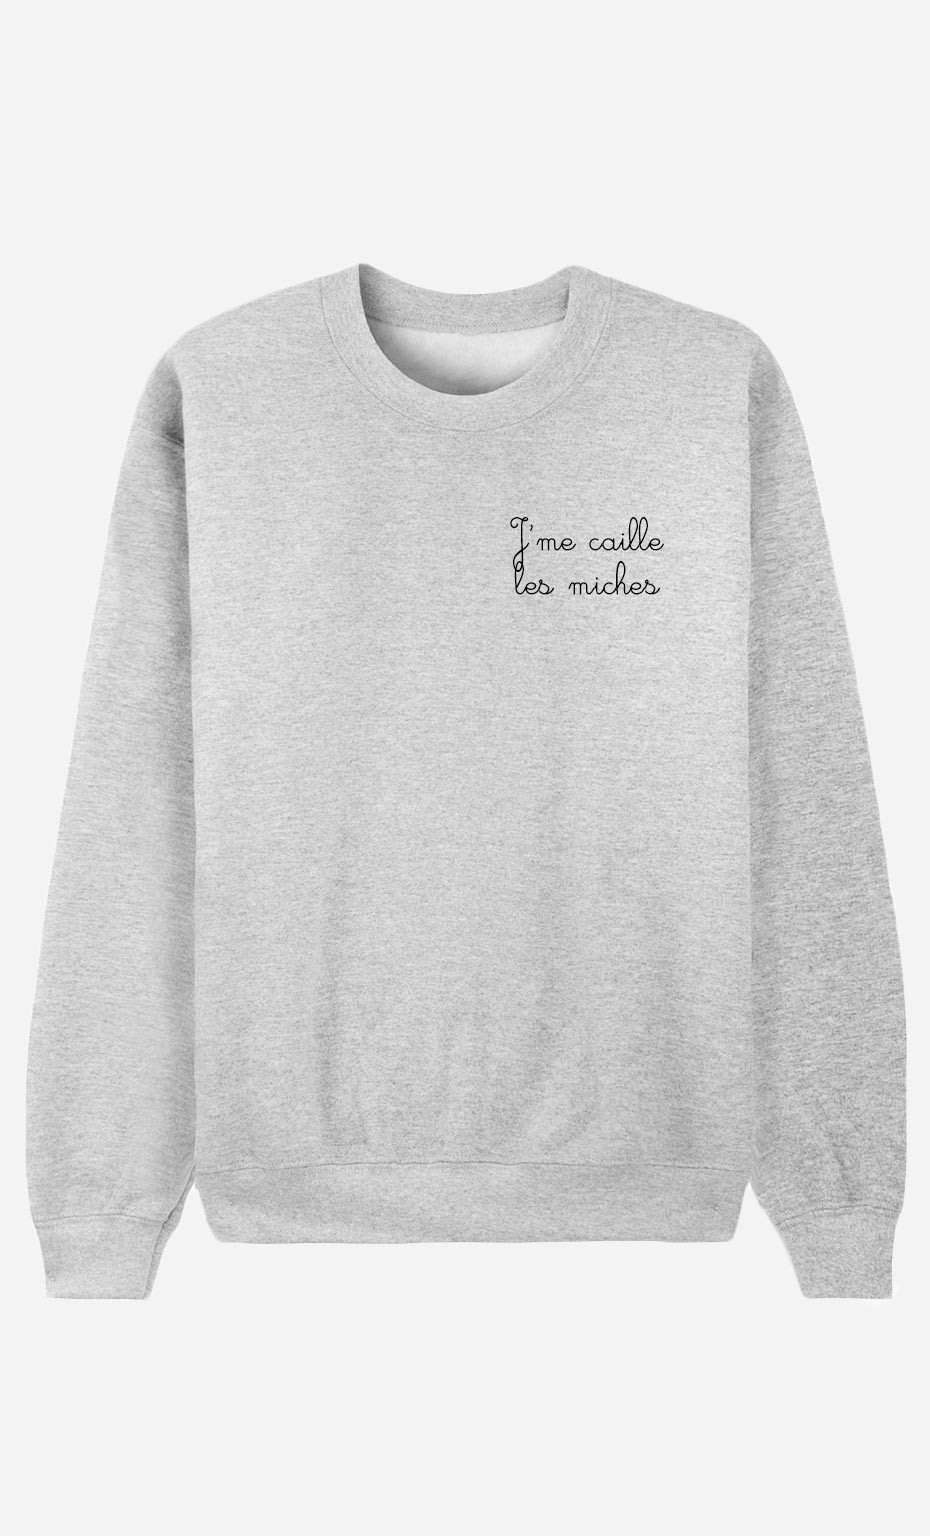 sweat-j-me-caille-les-miches-brode